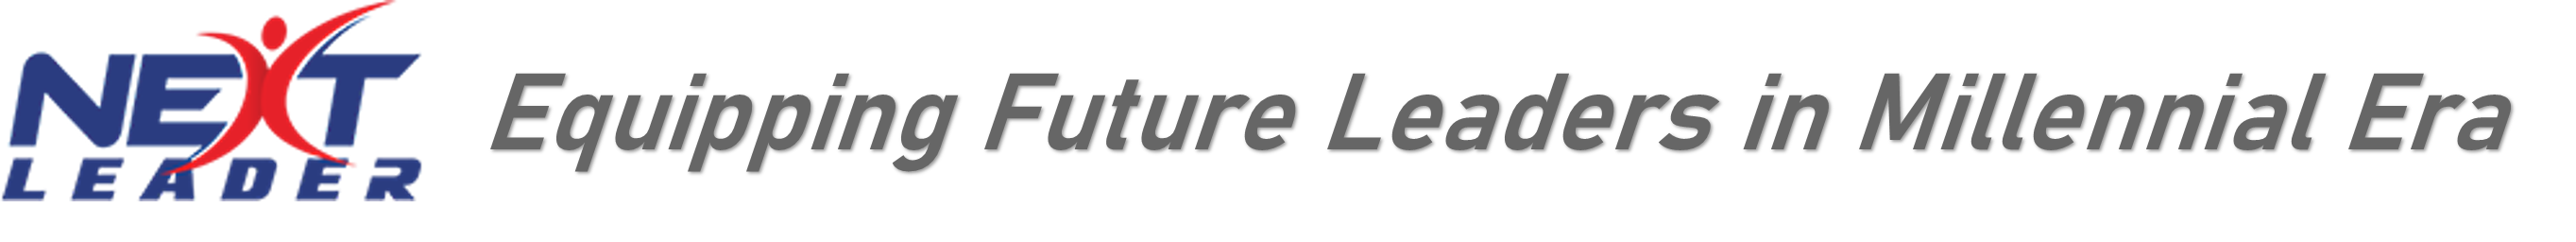 Next Leader Consulting